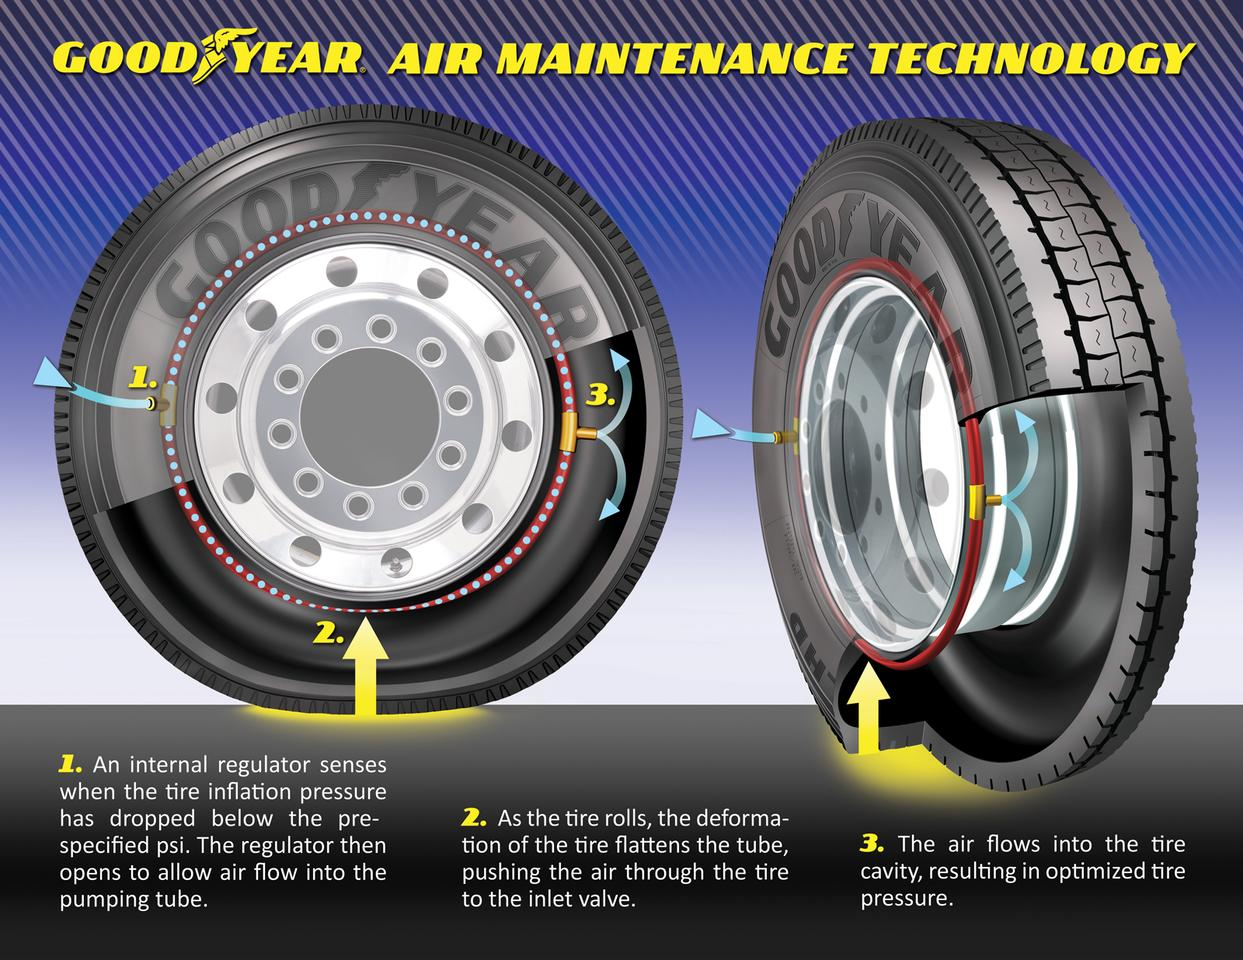 How Goodyear's AMT system works